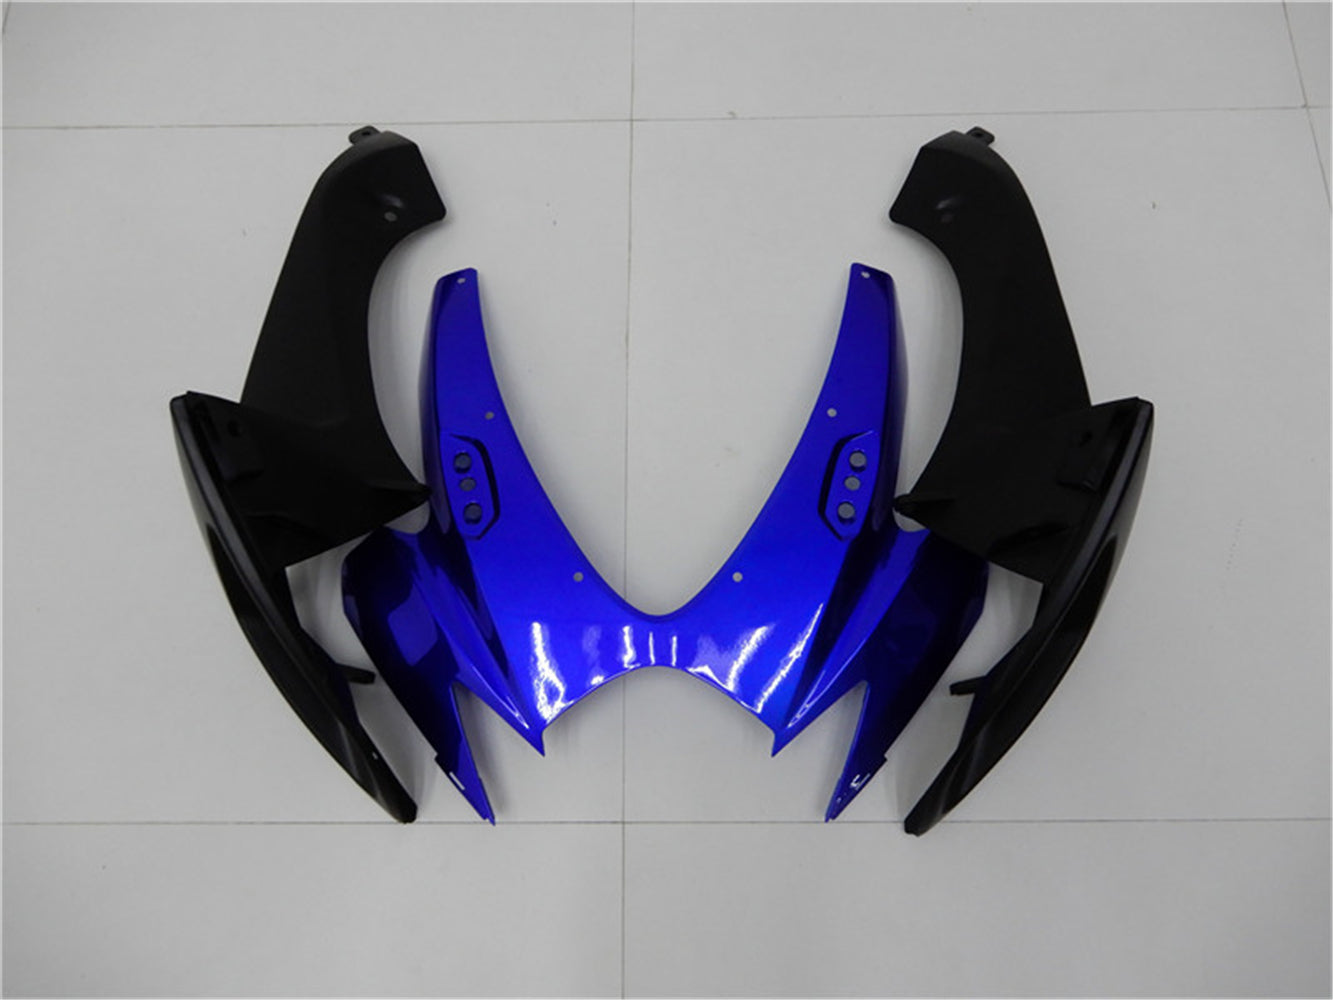 NT Aftermarket Injection ABS Plastic Fairing Kit Fit for GSXR 600/750 2006 2007 Blue Black N001 Available in CA, IL